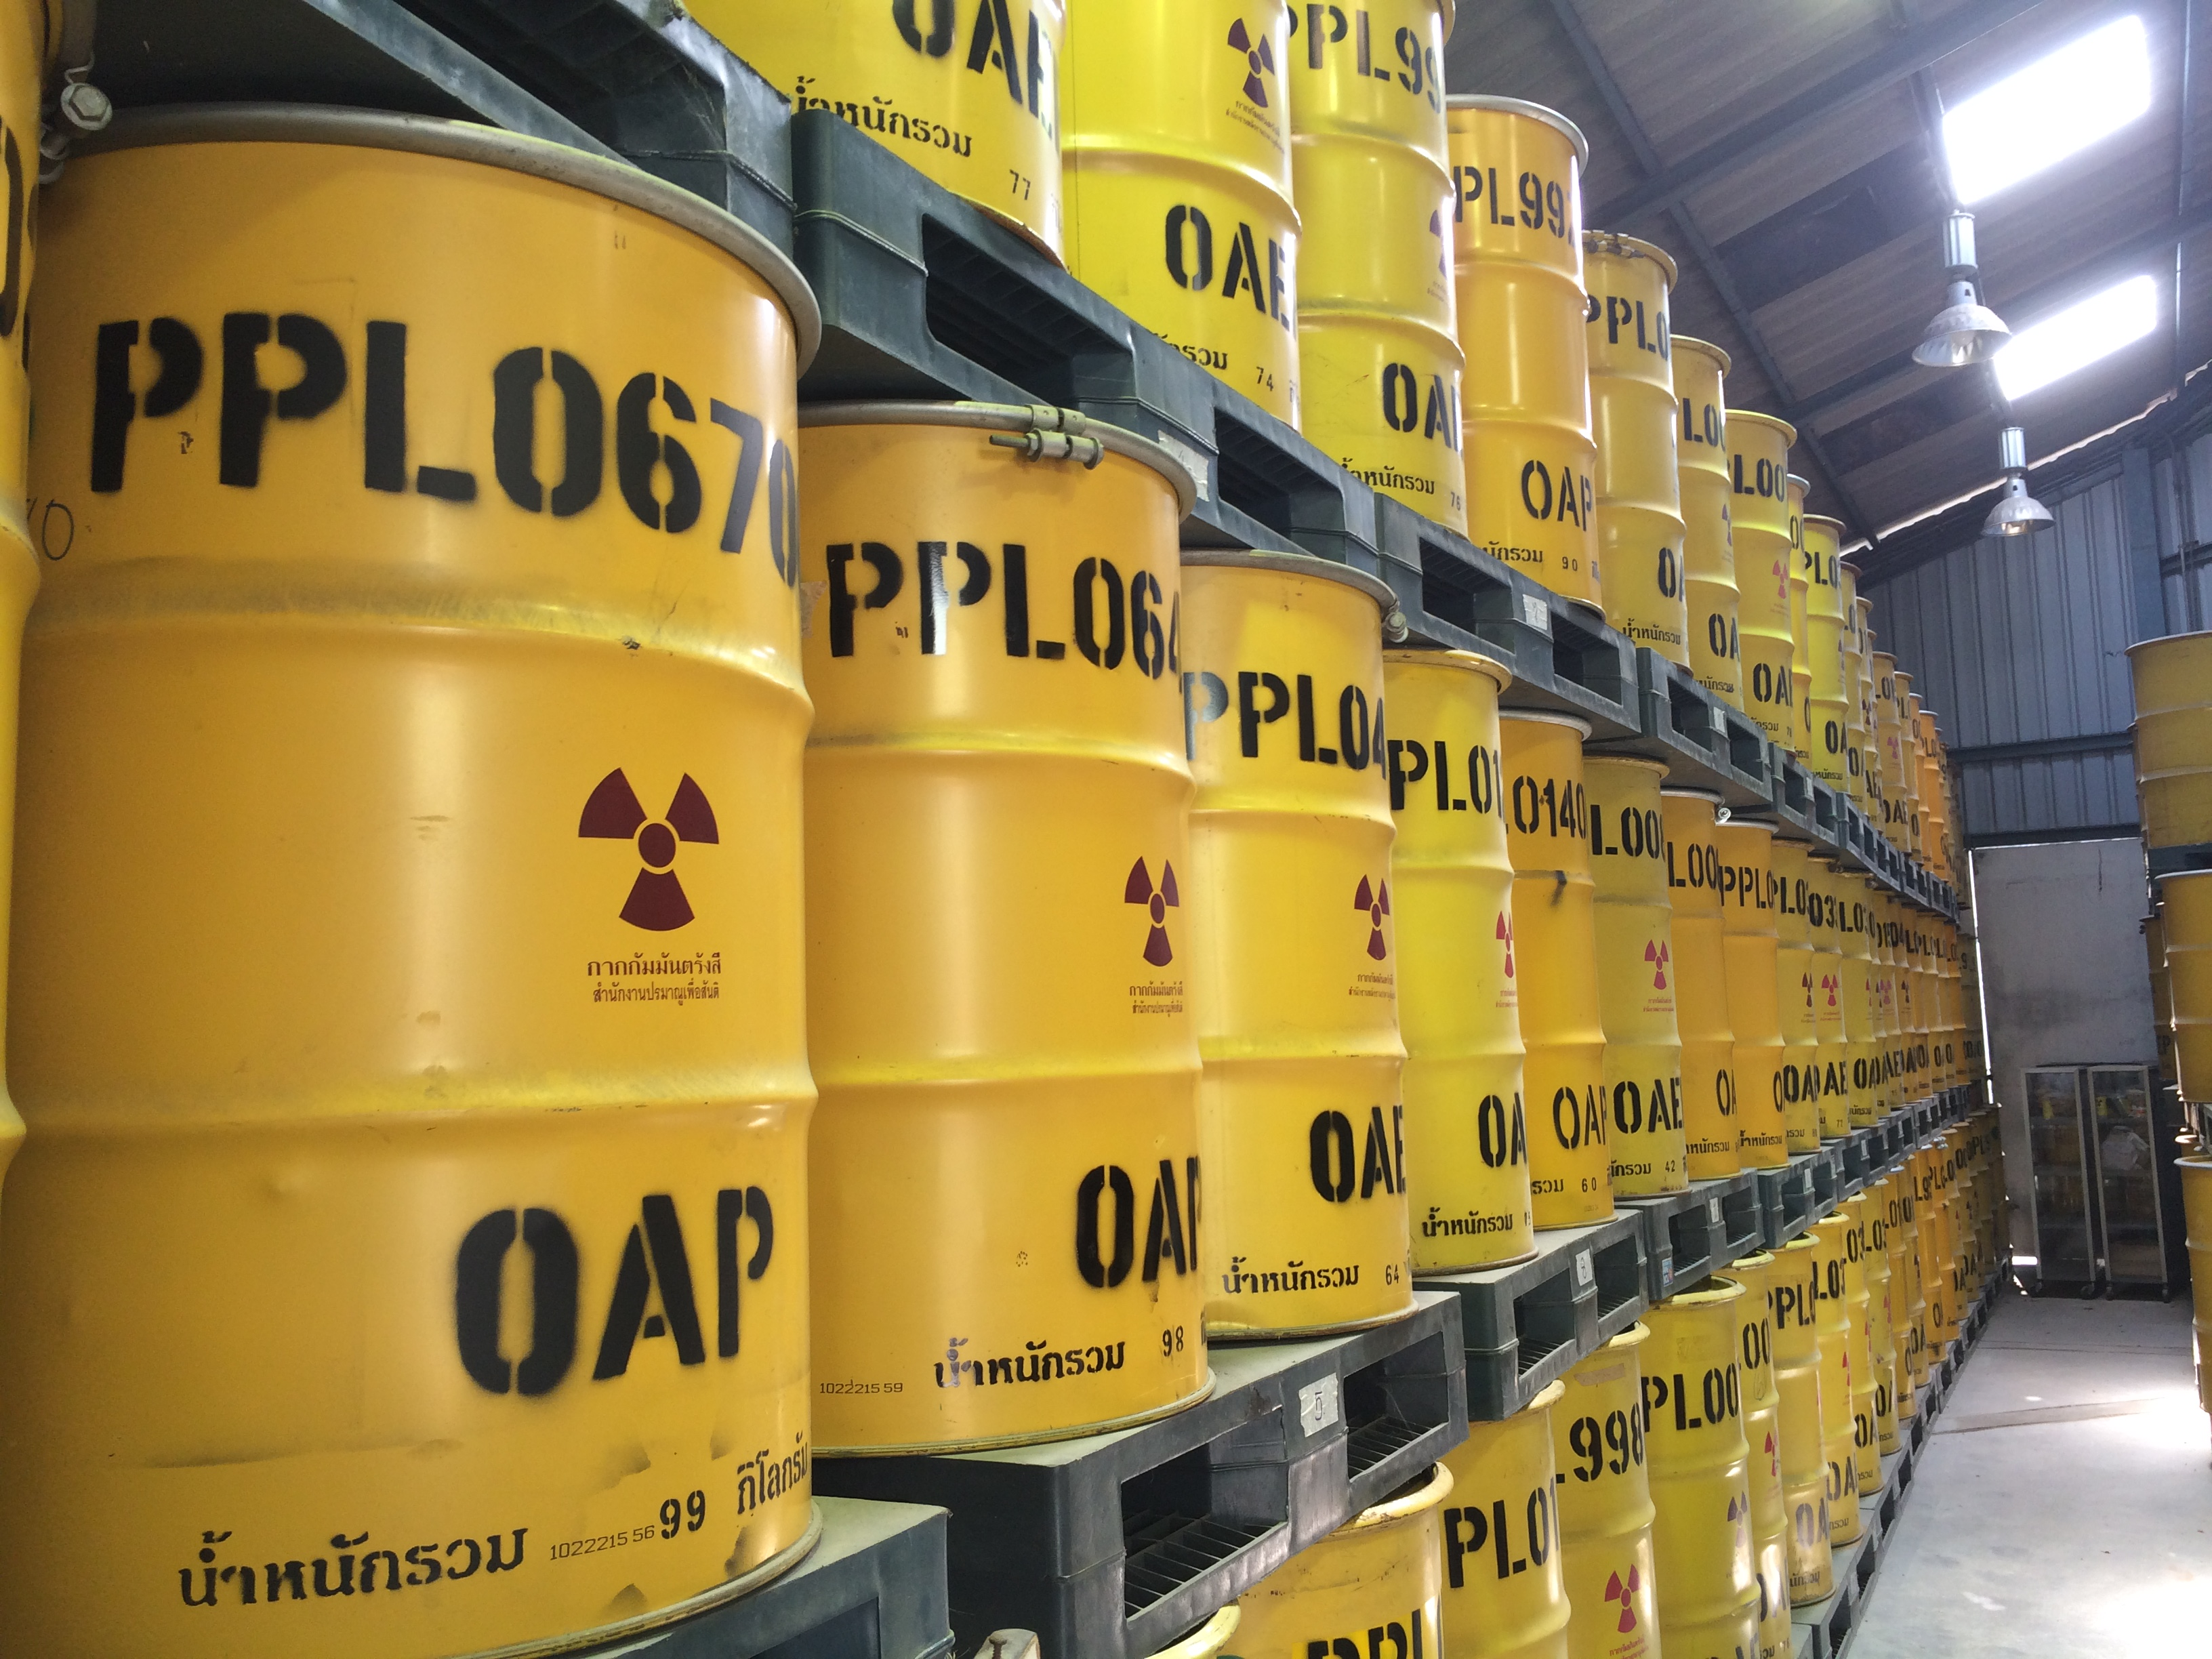 Rows of metal barrels containing nuclear waste